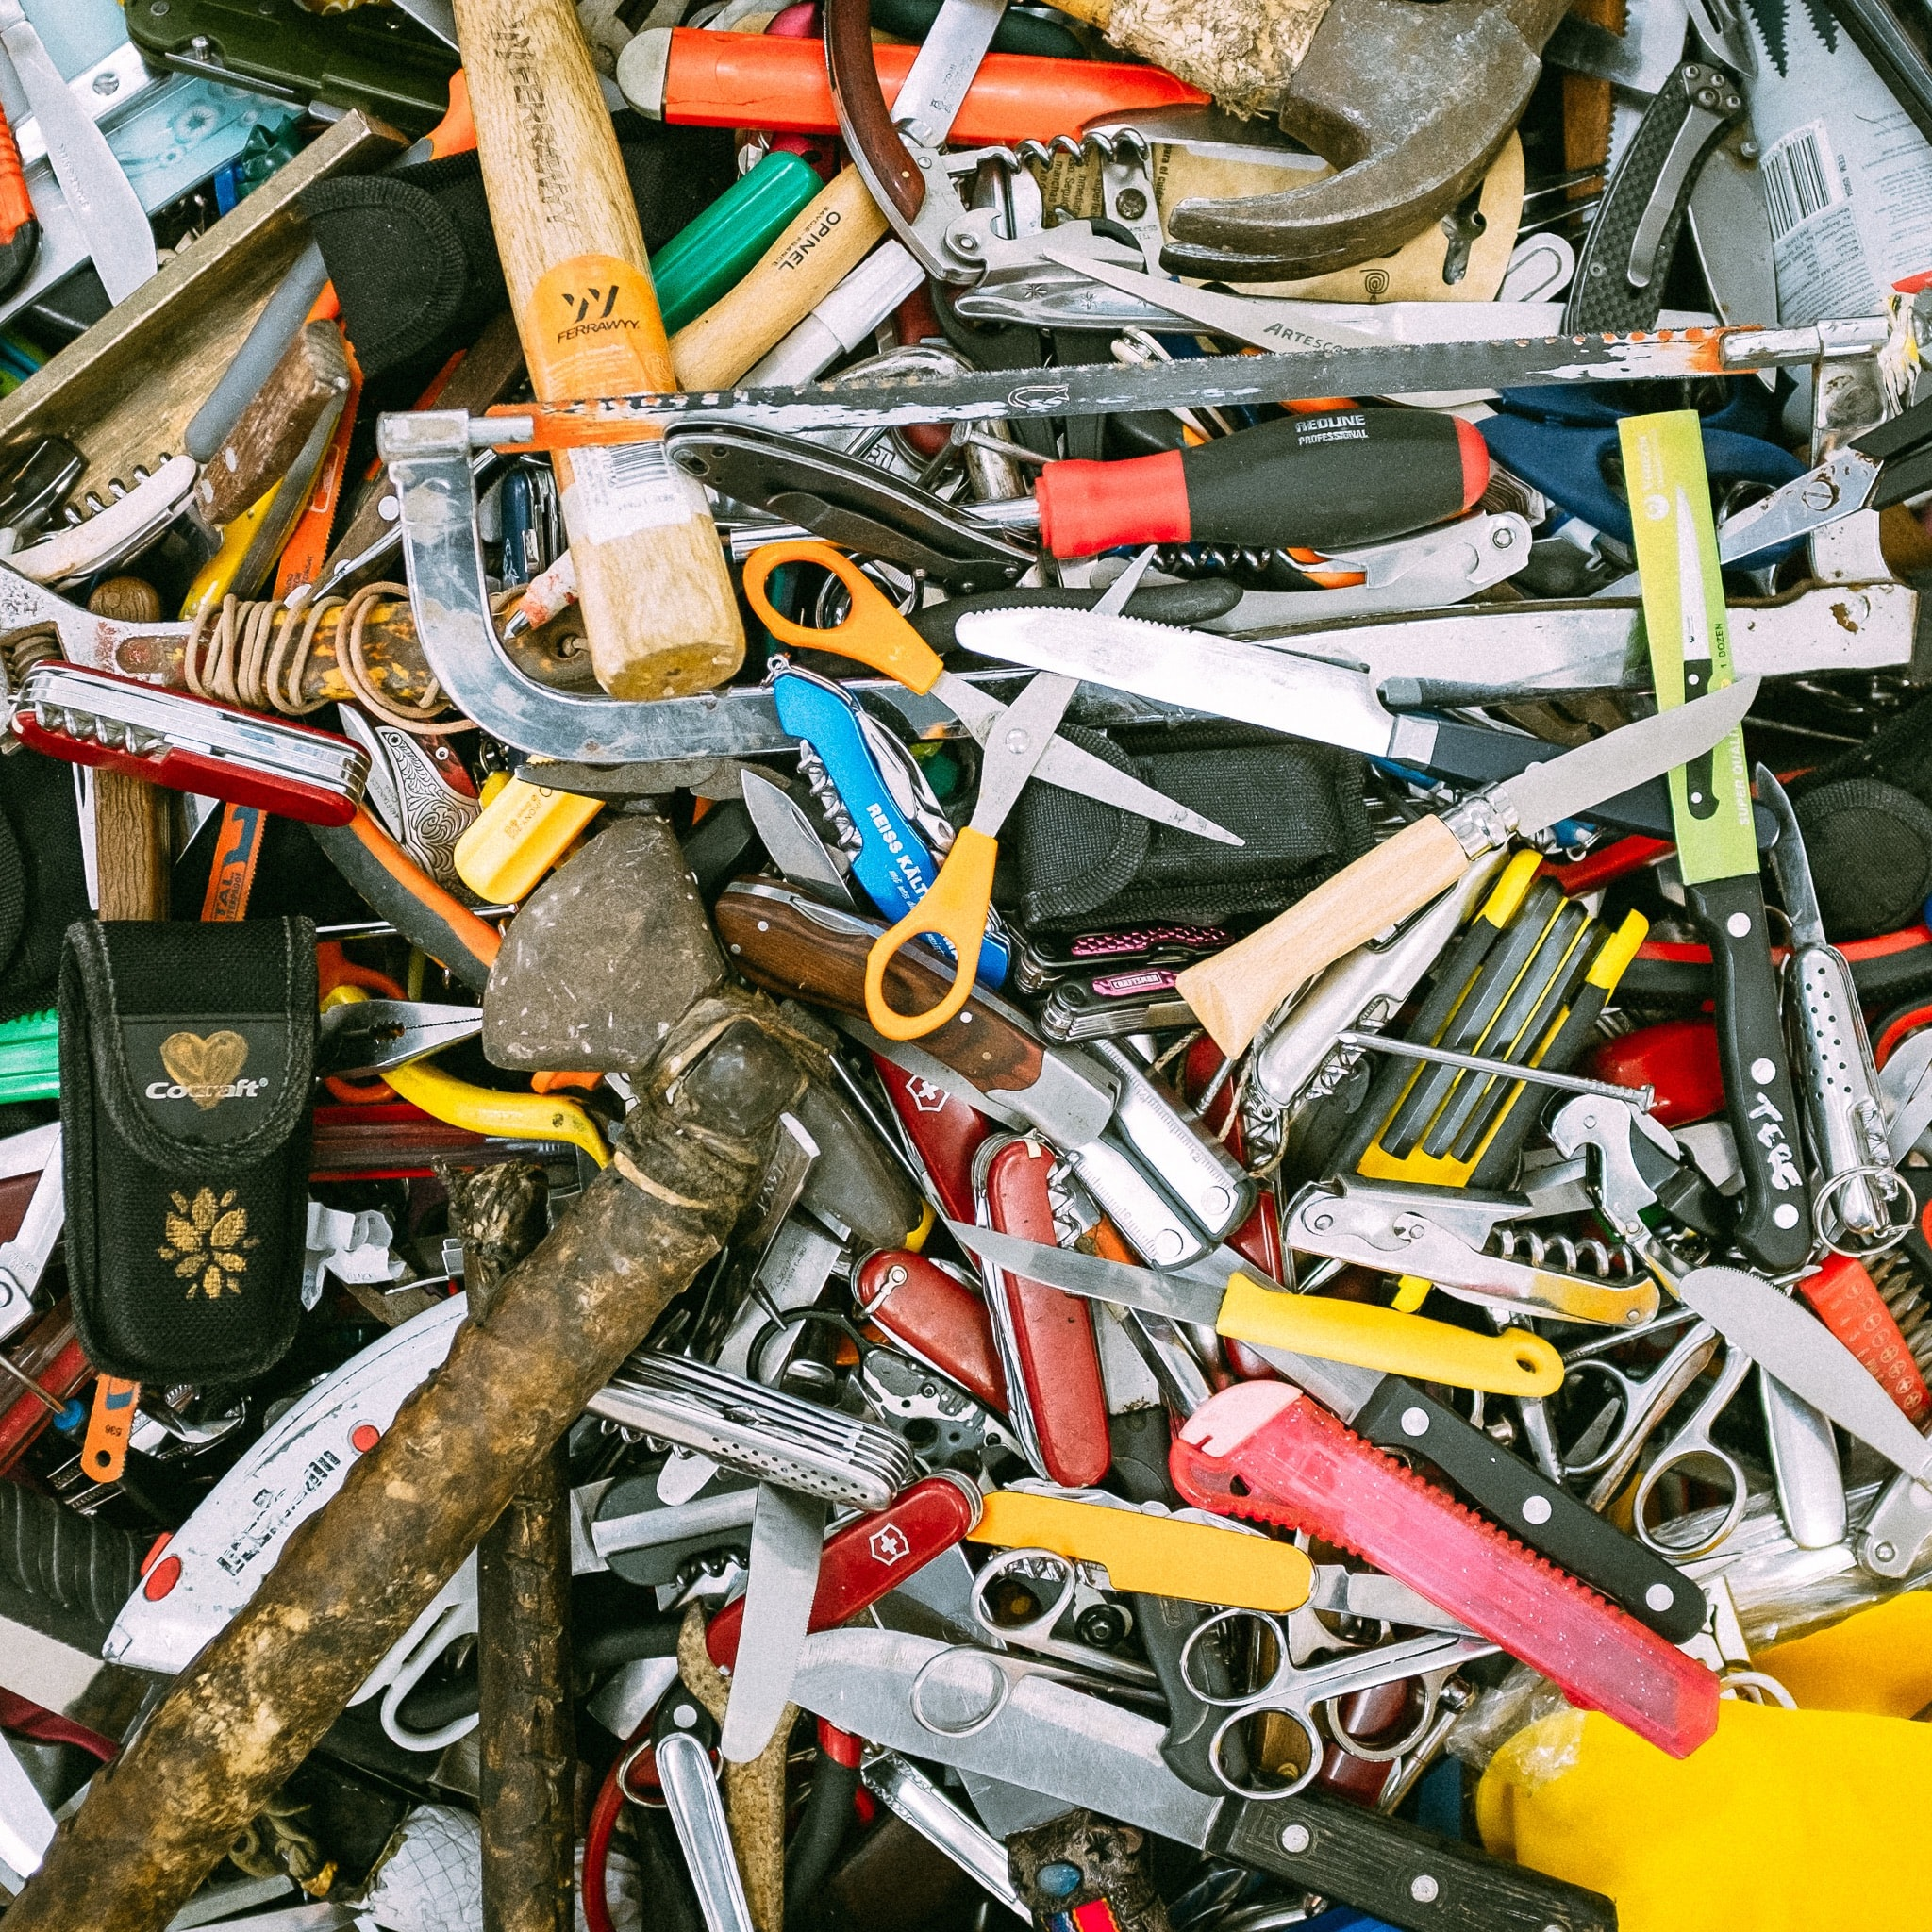 An overhead shot of a heap of scissors, knives, hammers and other tools